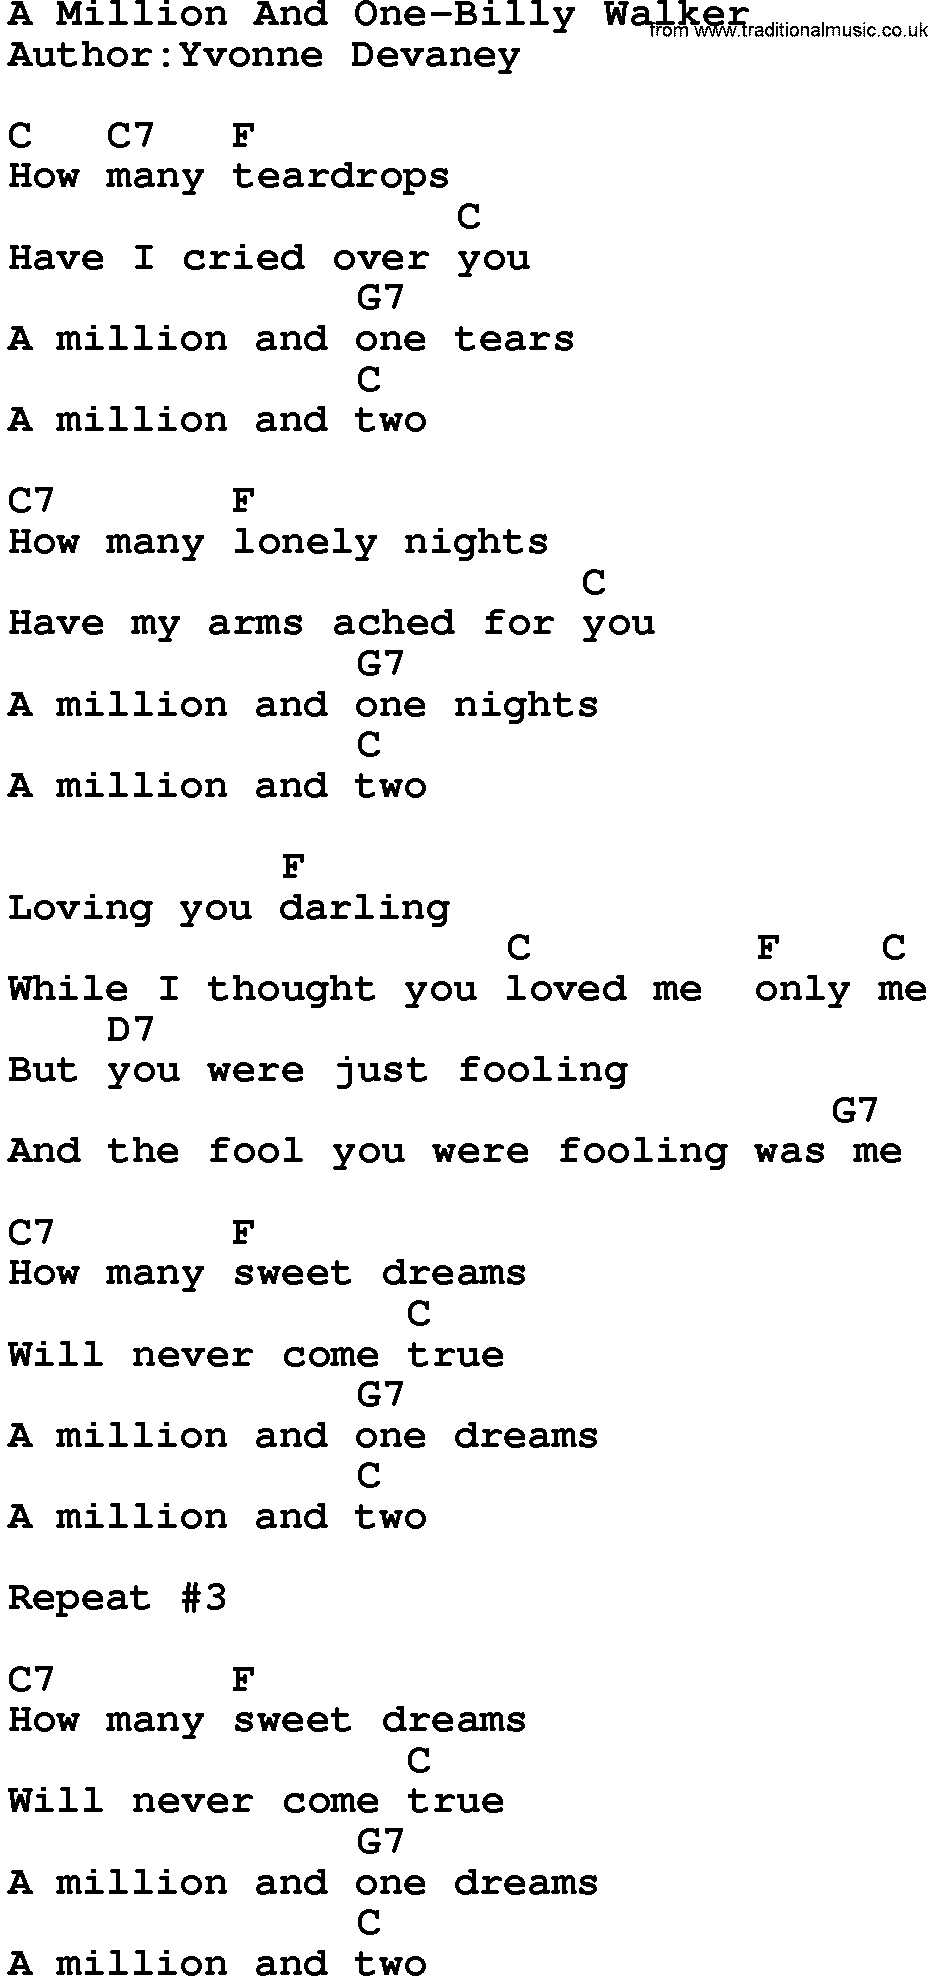 photograph relating to A Million Dreams Lyrics Printable referred to as Place New music:A Million And One particular-Billy Walker Lyrics and Chords